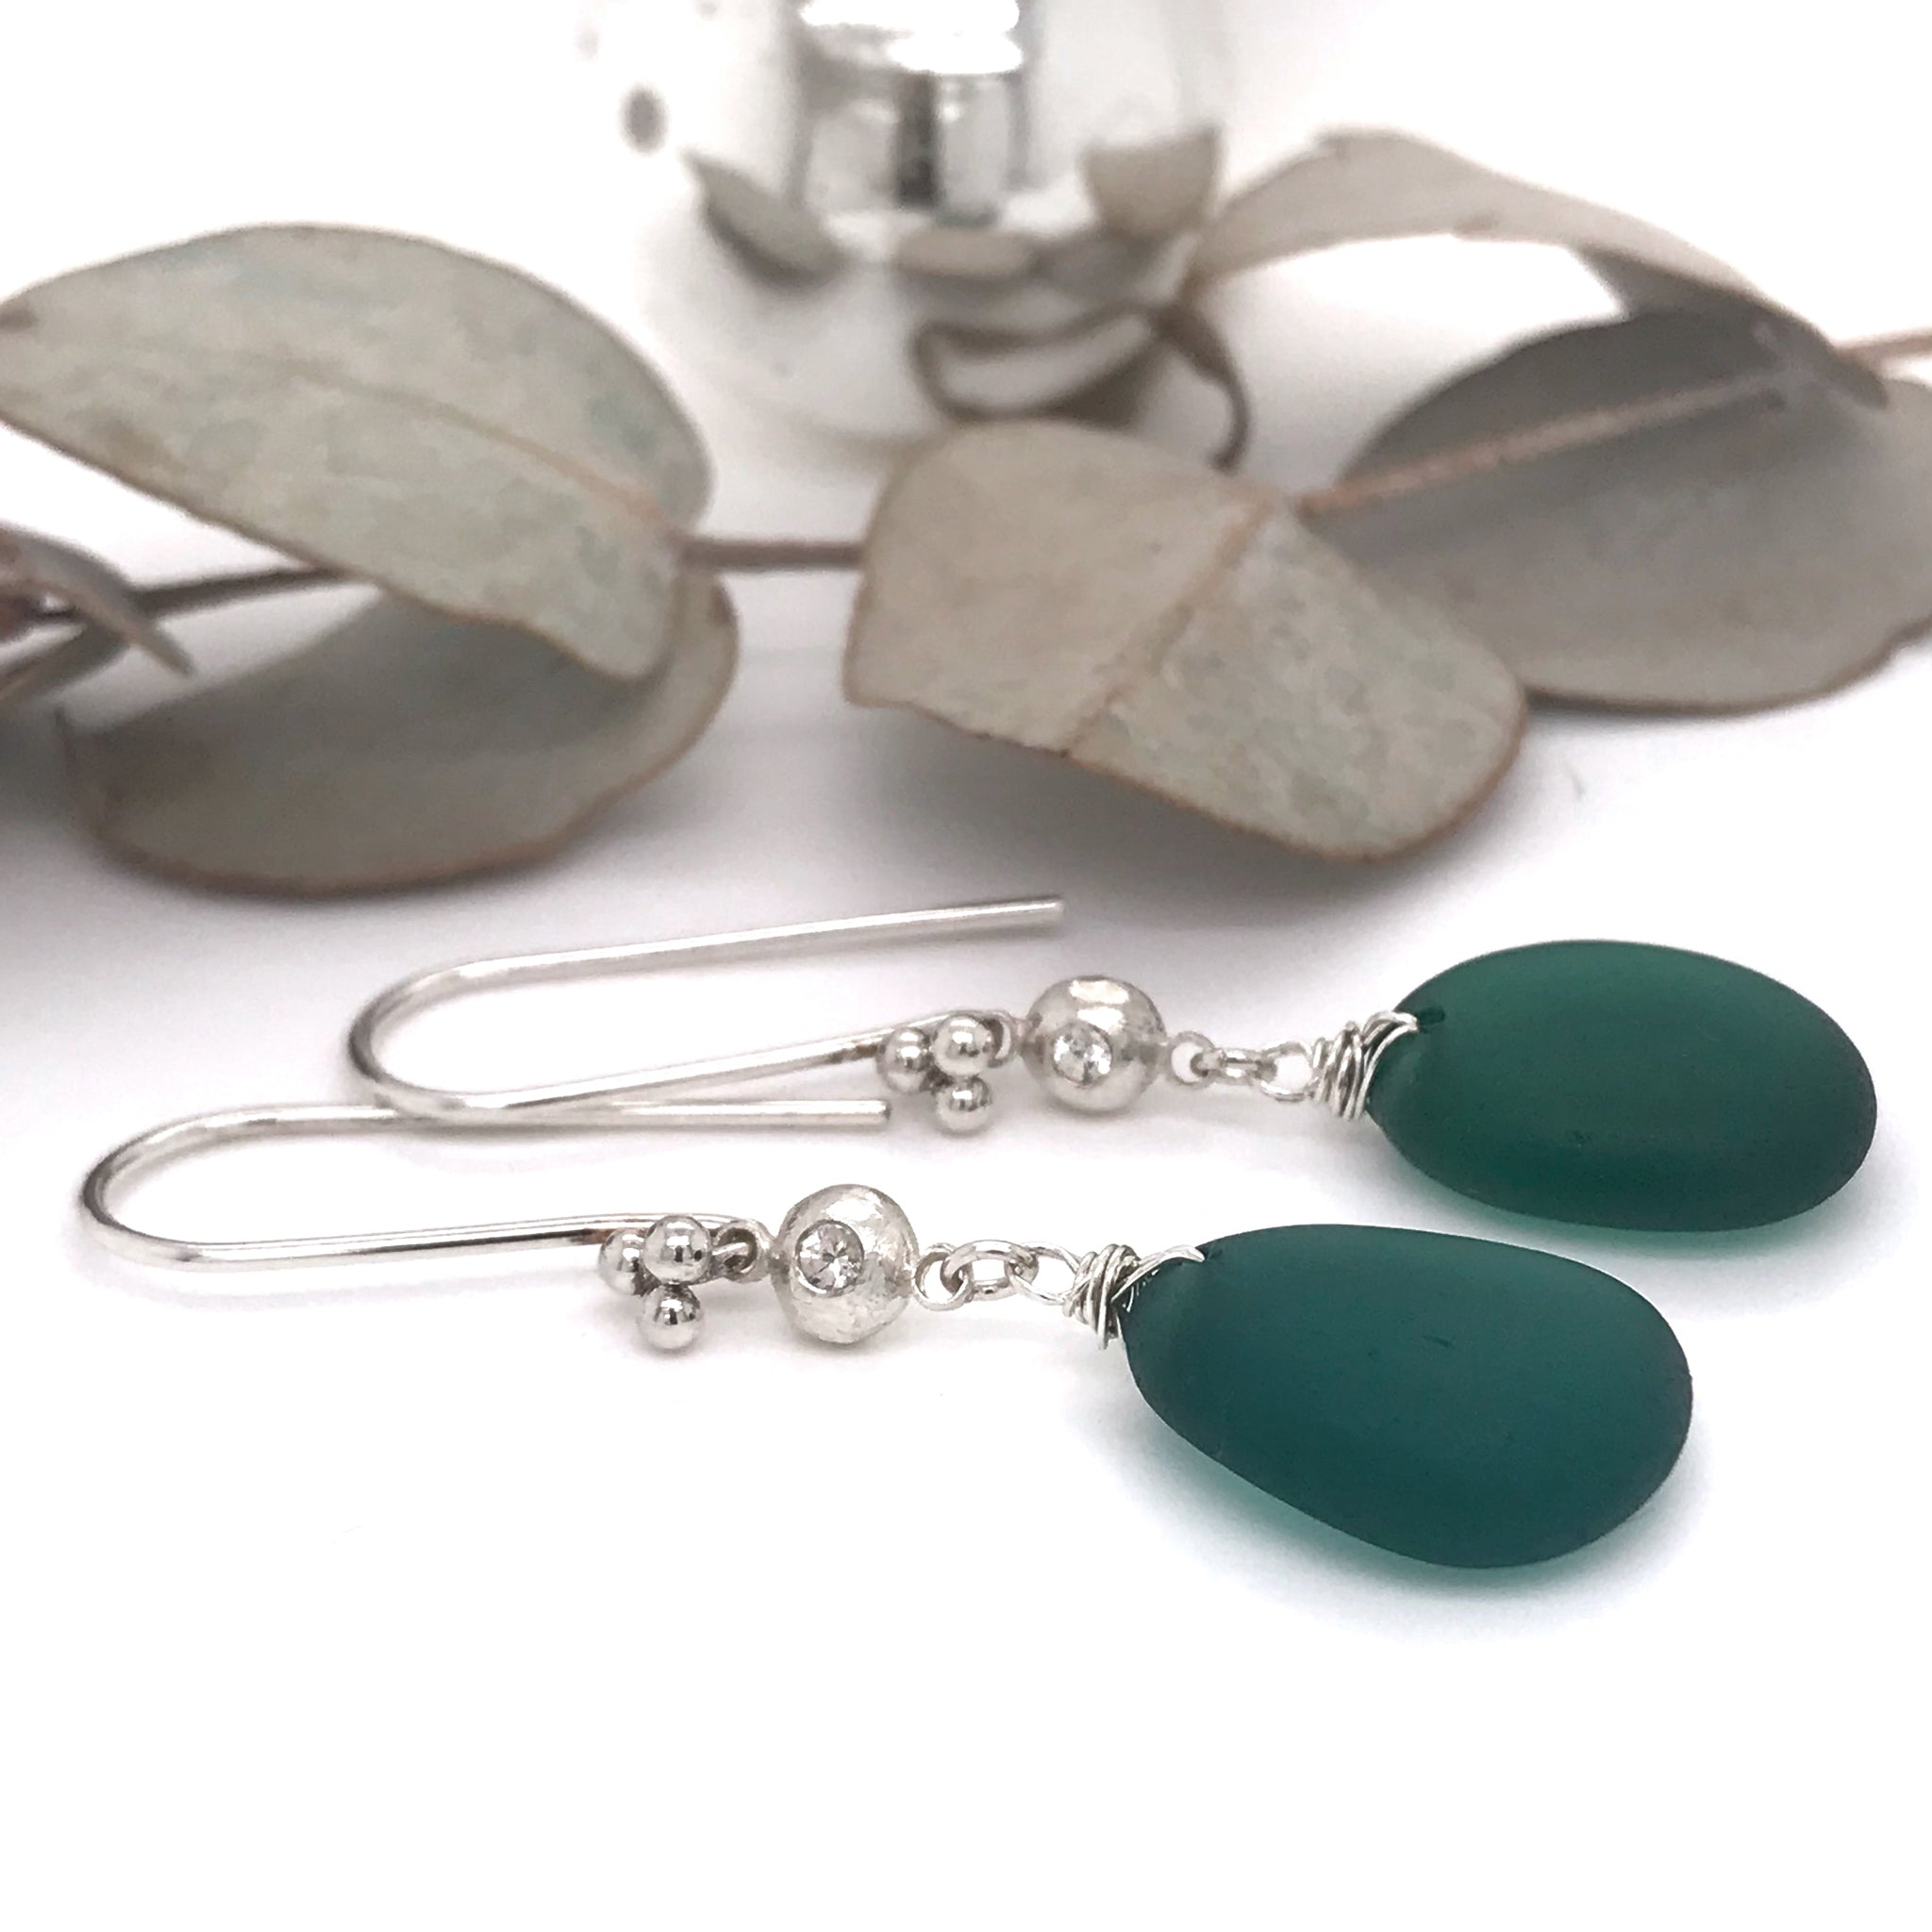 teal-green-earrings-sterling-silver-with-white-sapphires-kriket-broadhurst-christmas-gifts-for-women-Sydney